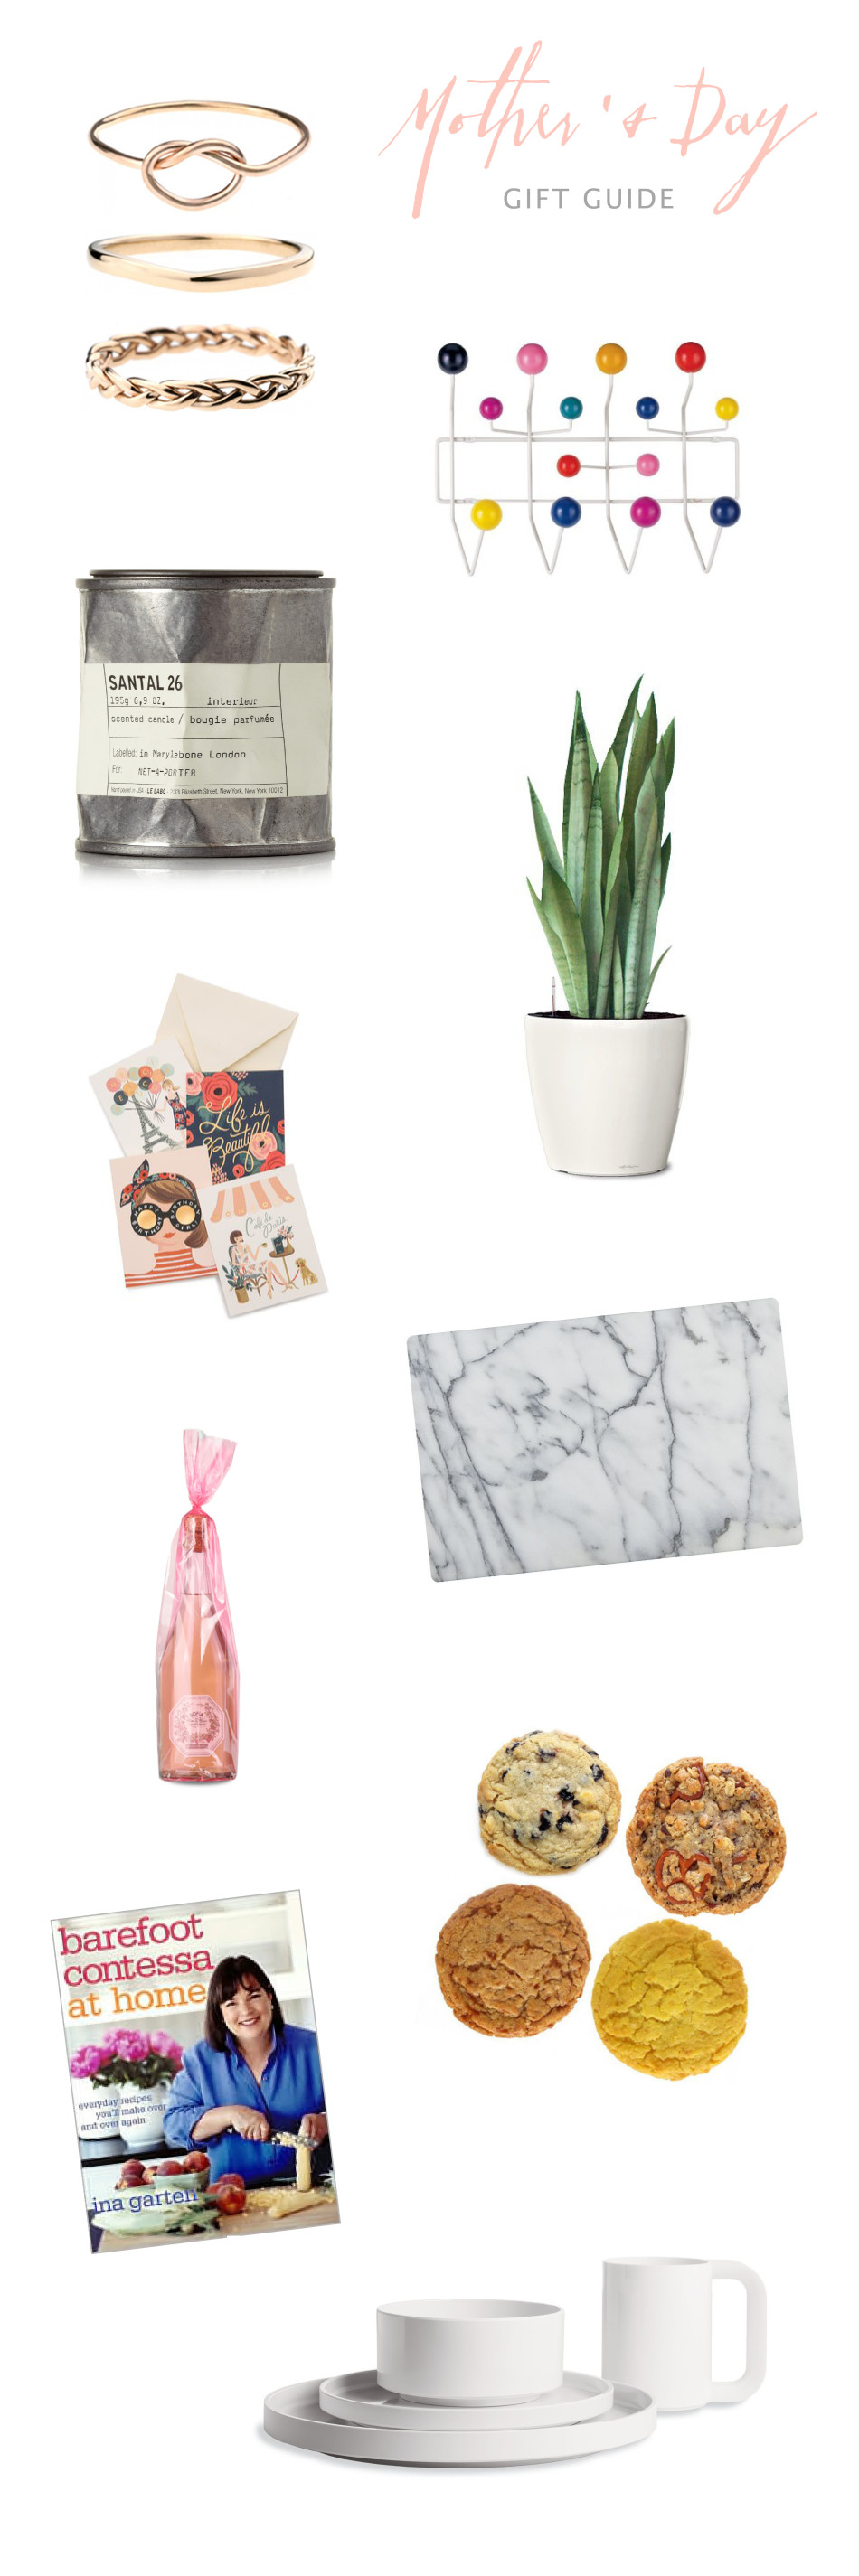 HANNAH SHELBY: Mothers Day Gift Guide